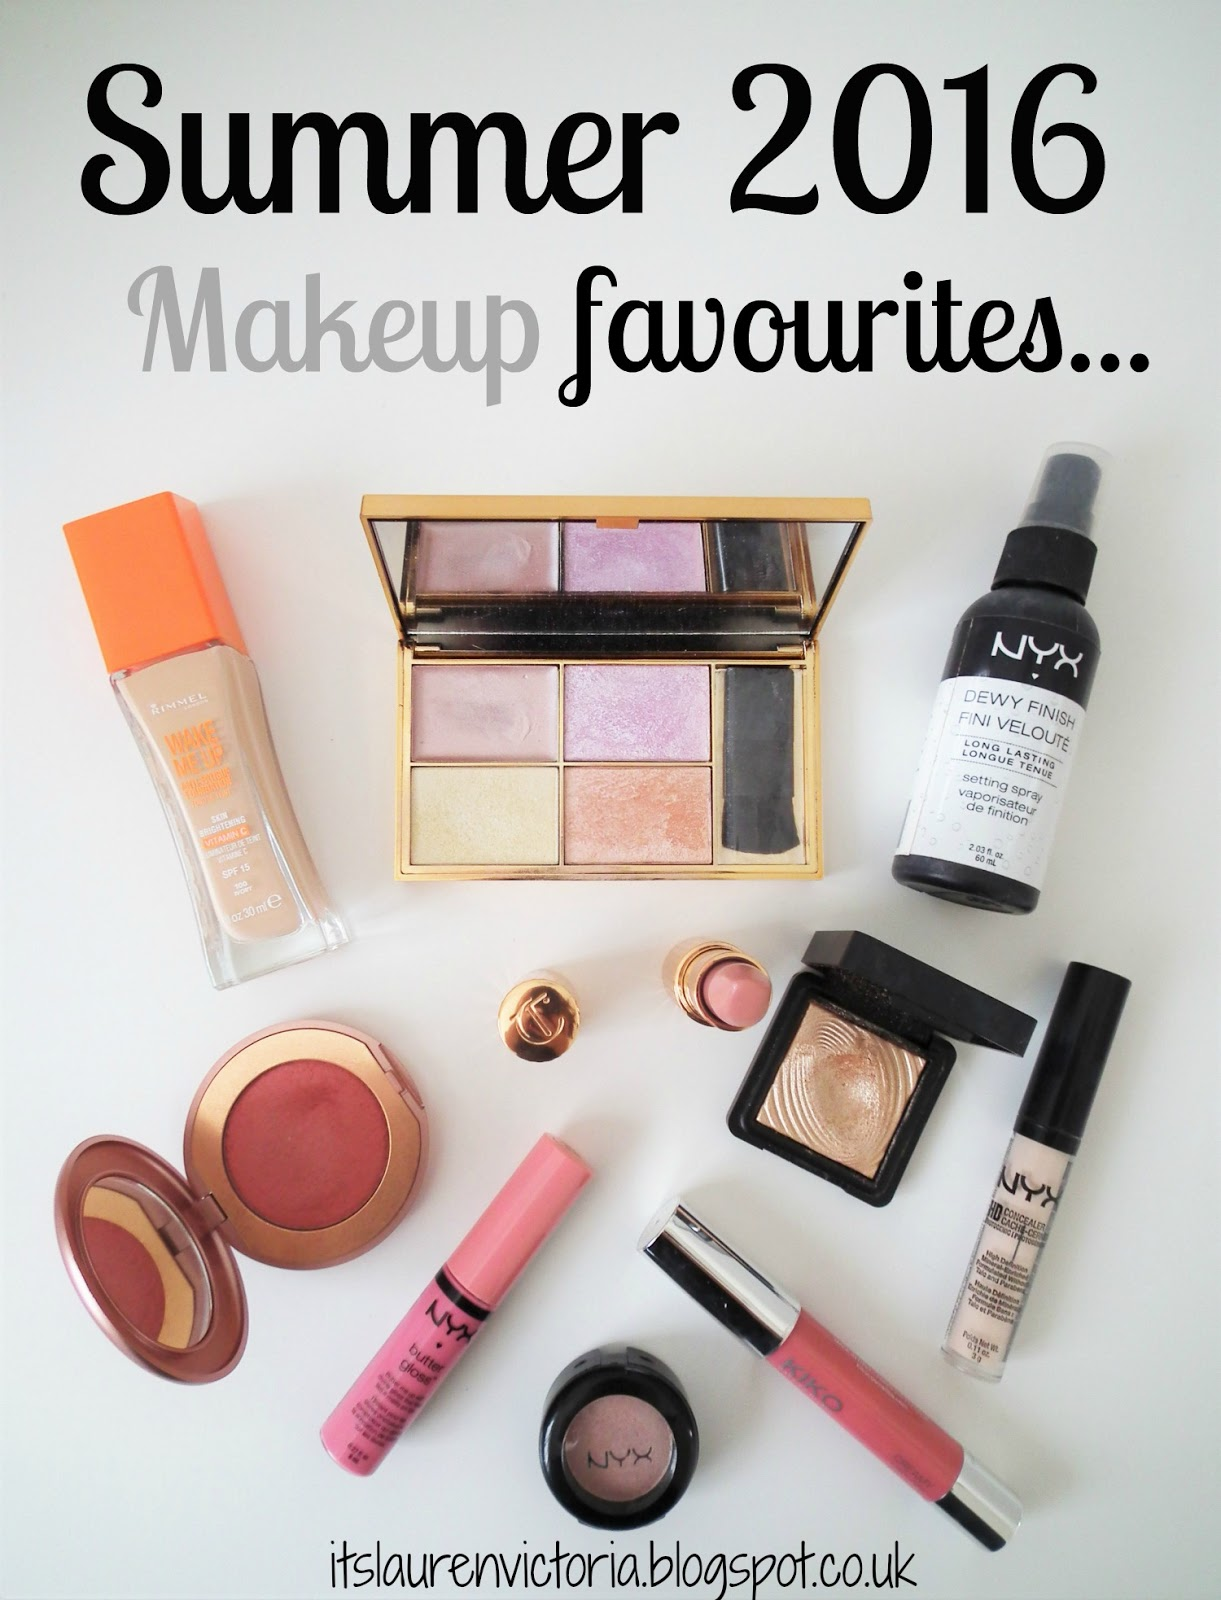 Summer 2016 Makeup Favourites Pinterest